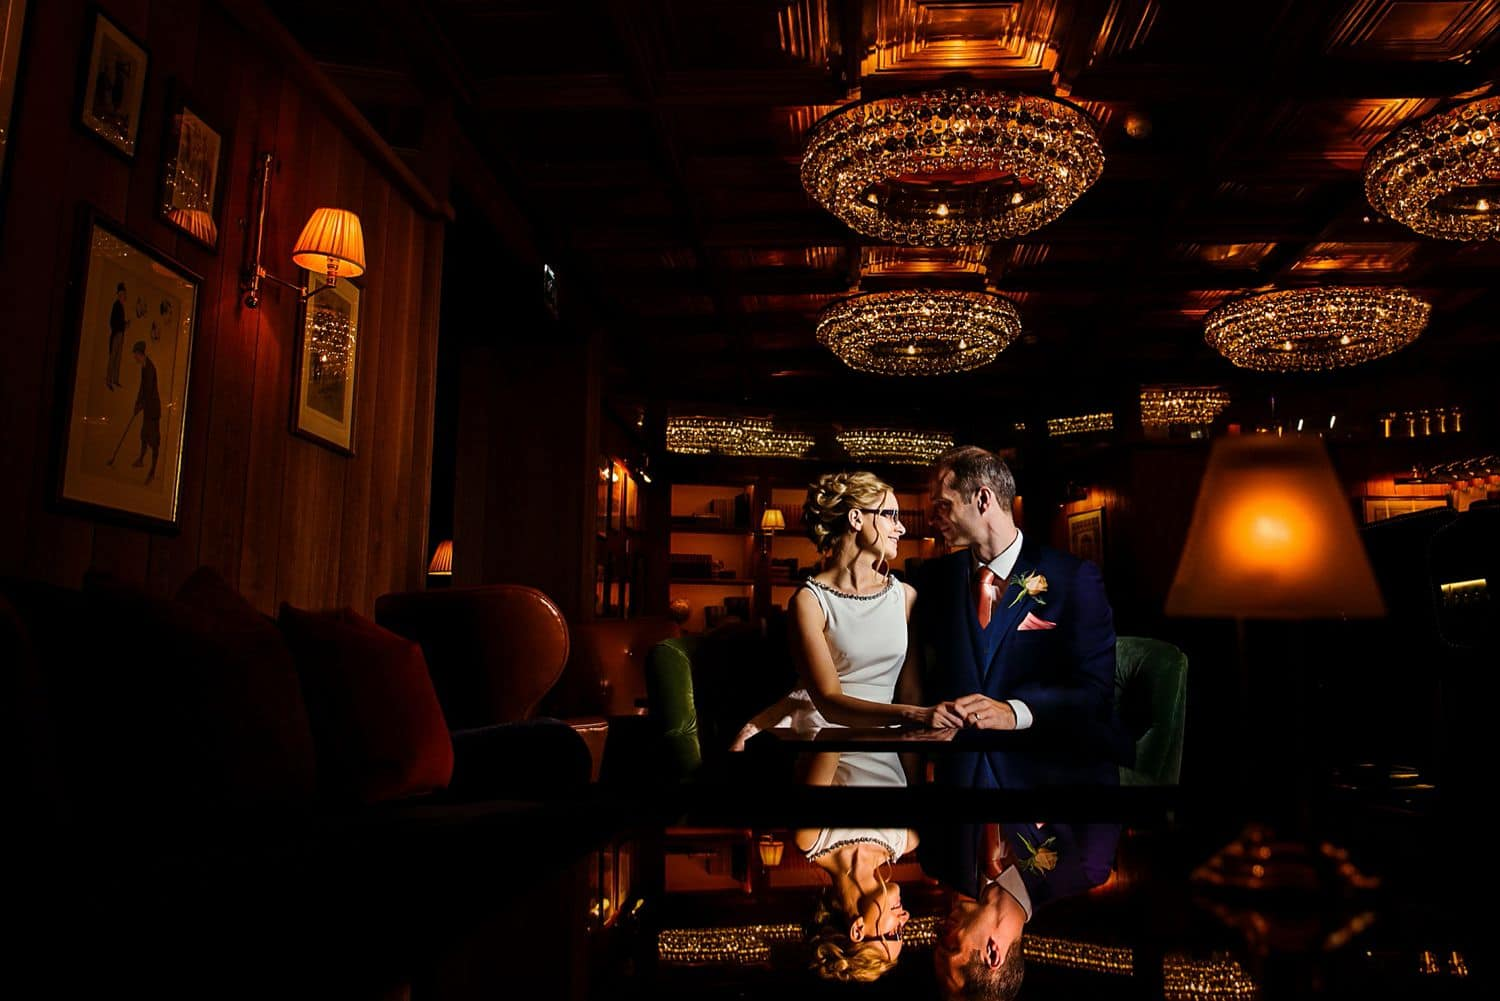 A bride and groom sit in a dark ballroom gazing into one another's eyes